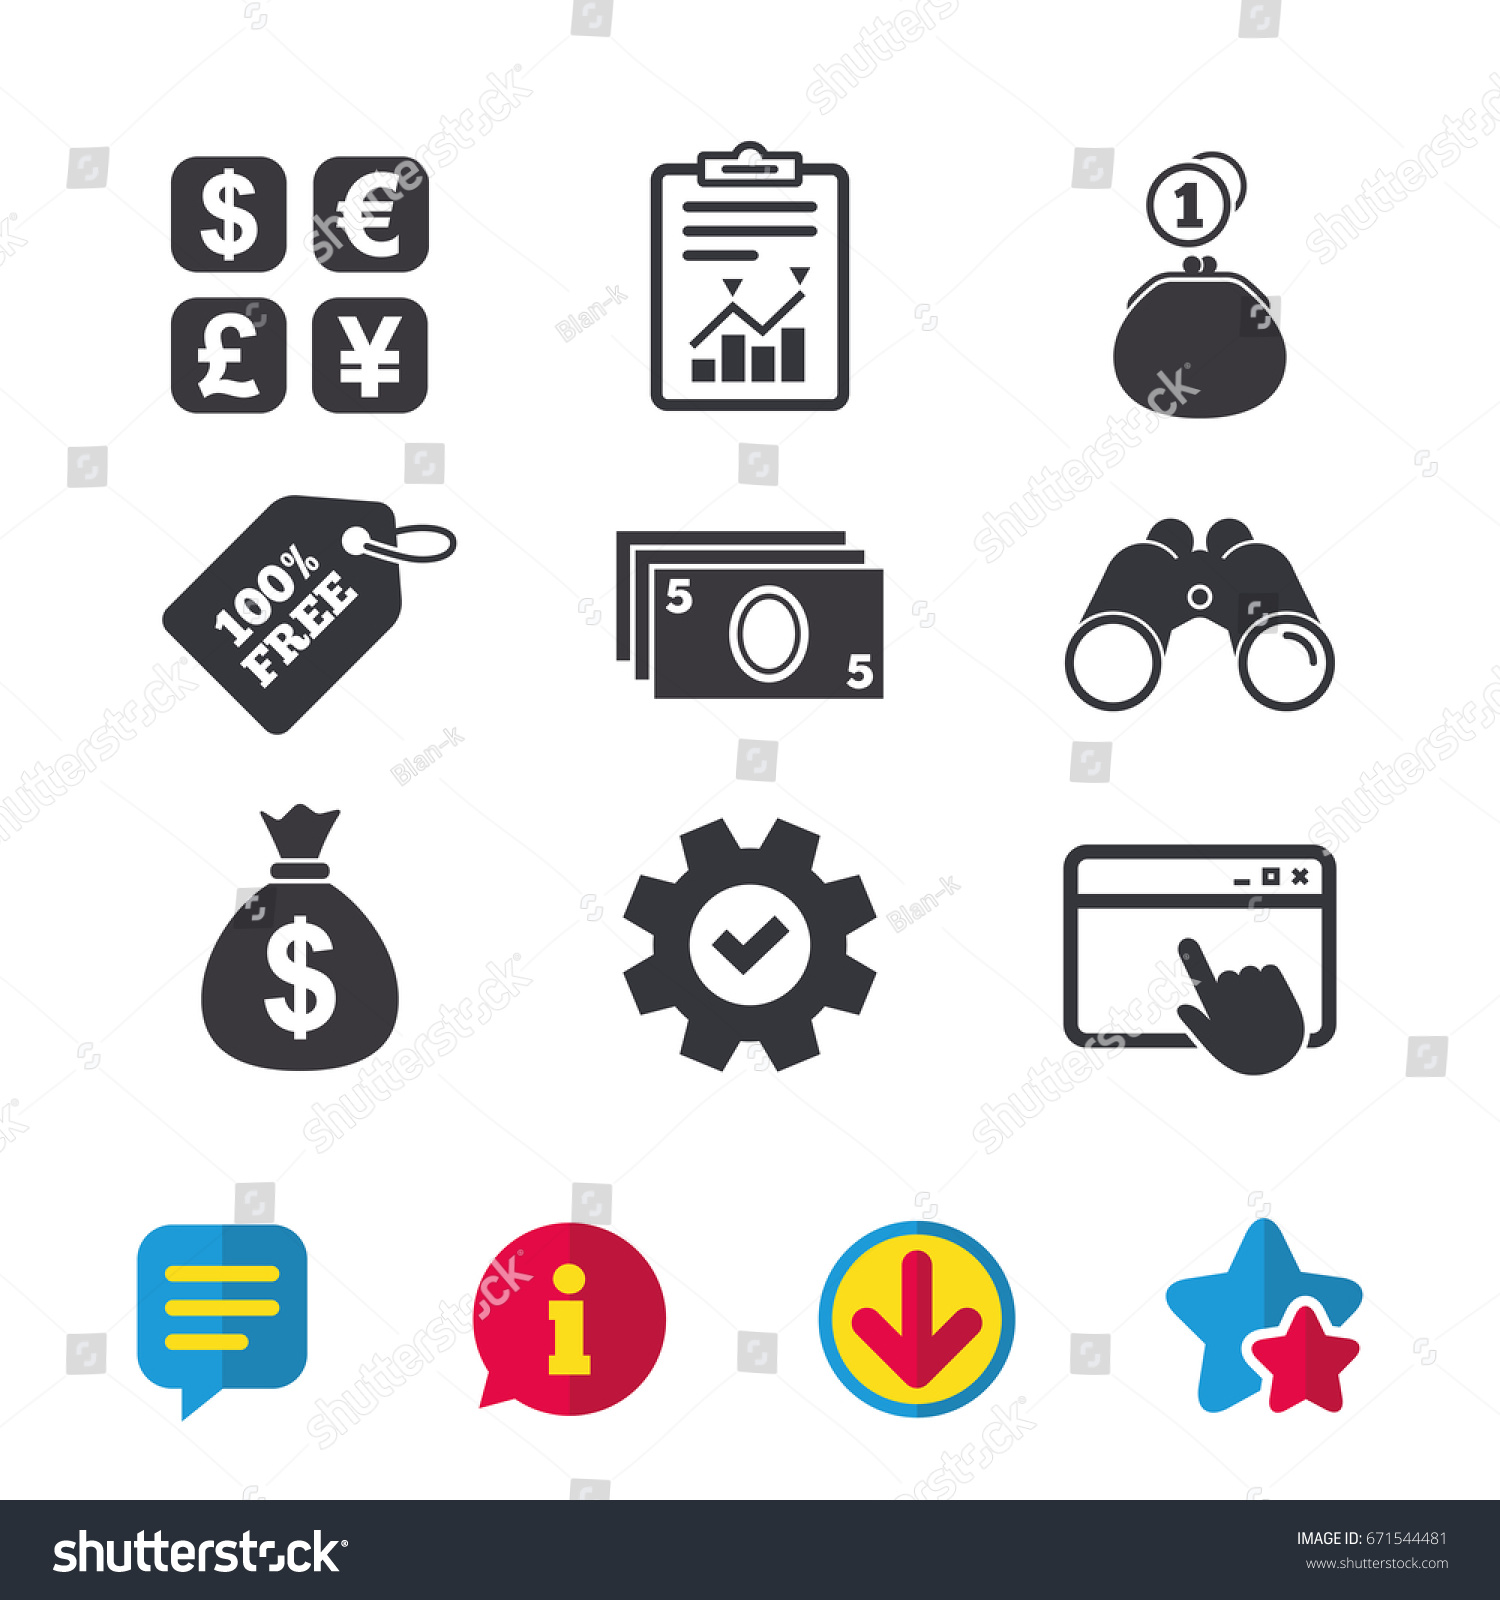 Currency Exchange Icon Cash Money Bag Stock Vector Royalty Free